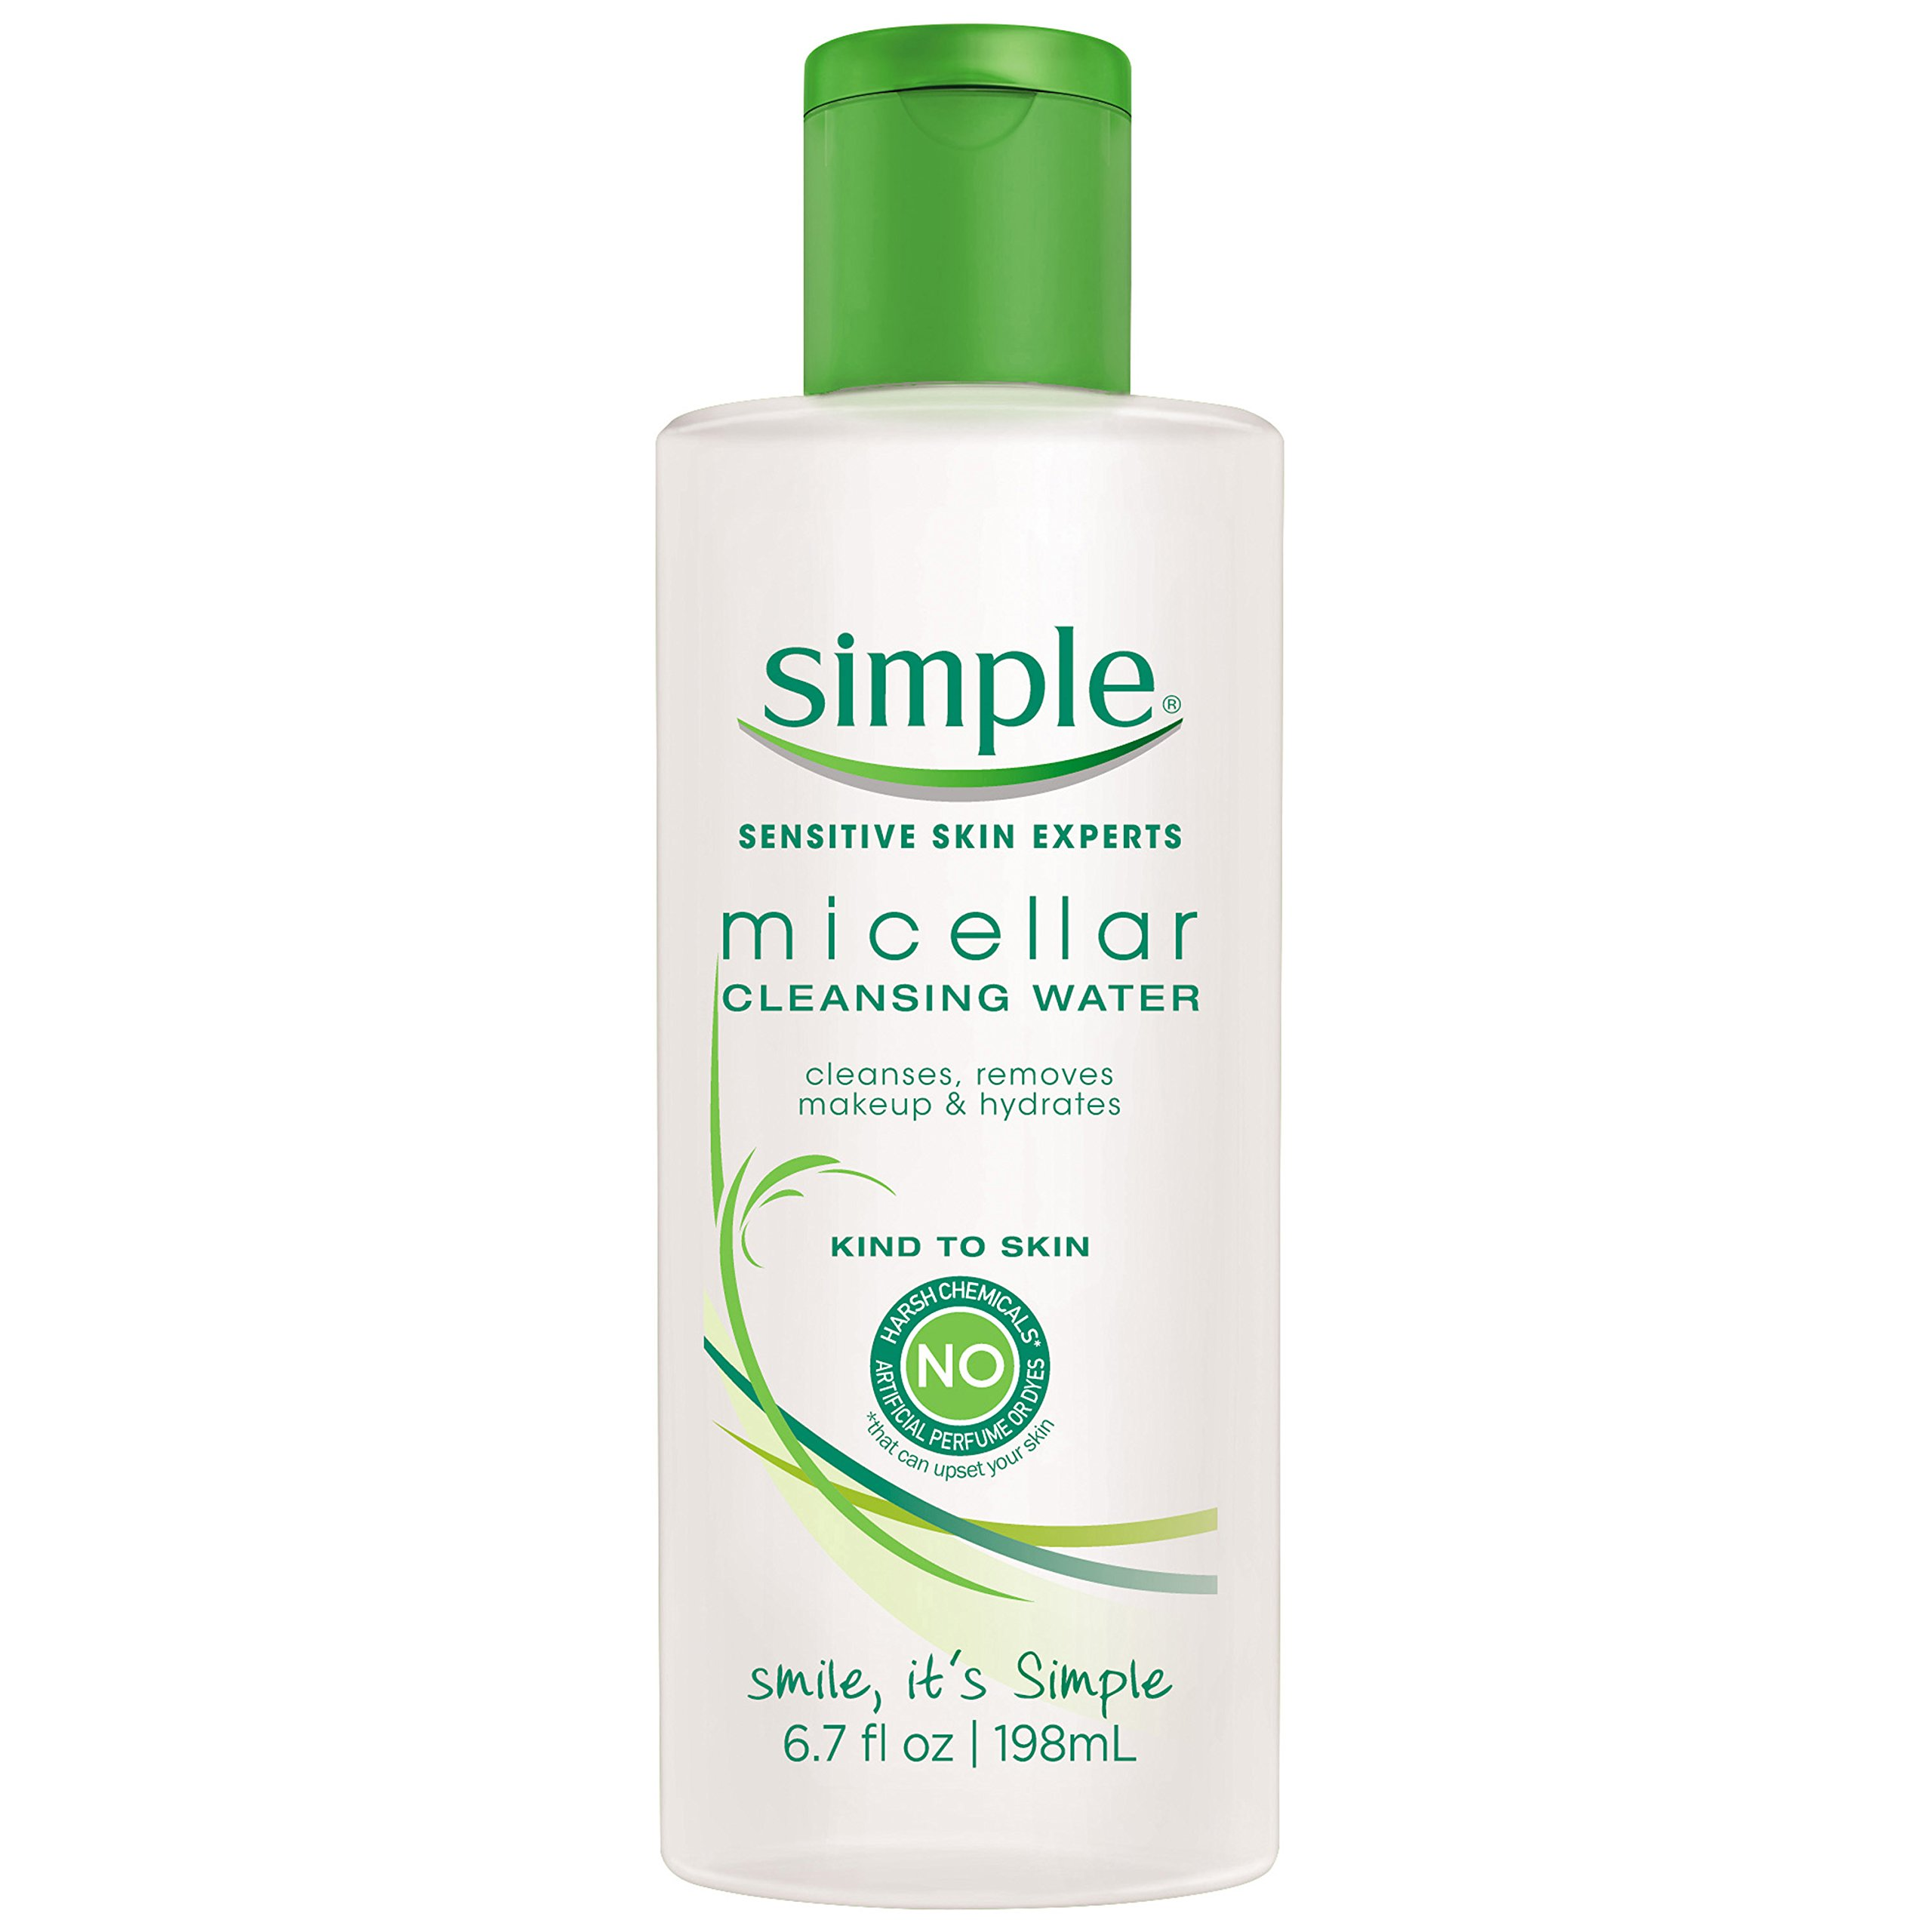 Simple Kind to Skin Cleansing Water, Micellar, 6.7 oz